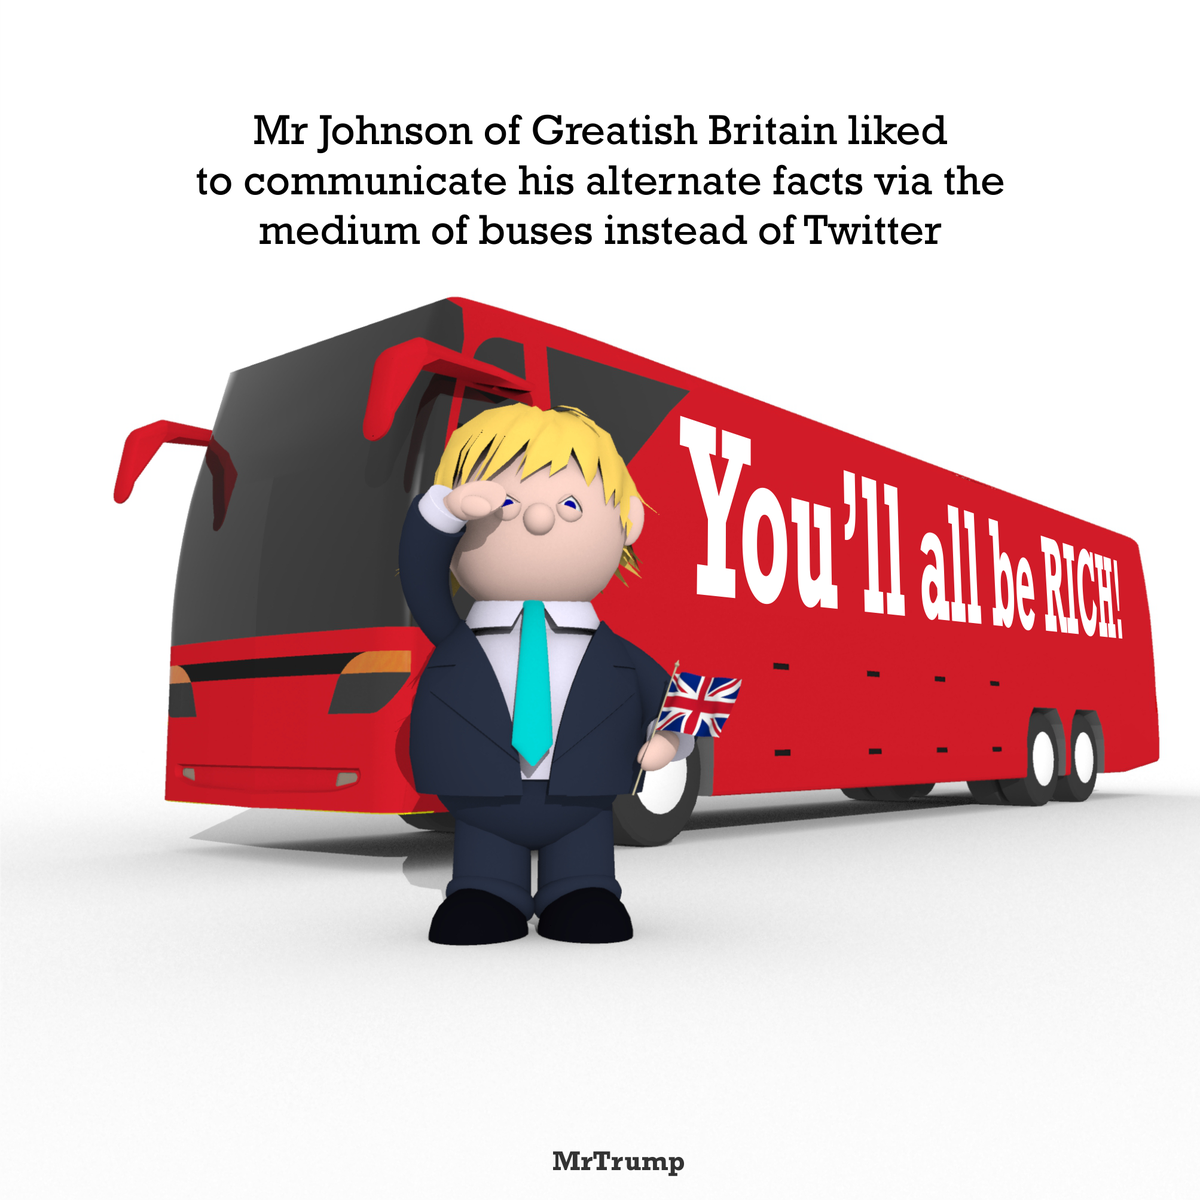 Mr Johnson of Greatish Britain liked to communicate his #AlternateFacts via the medium of buses instead of Twitter